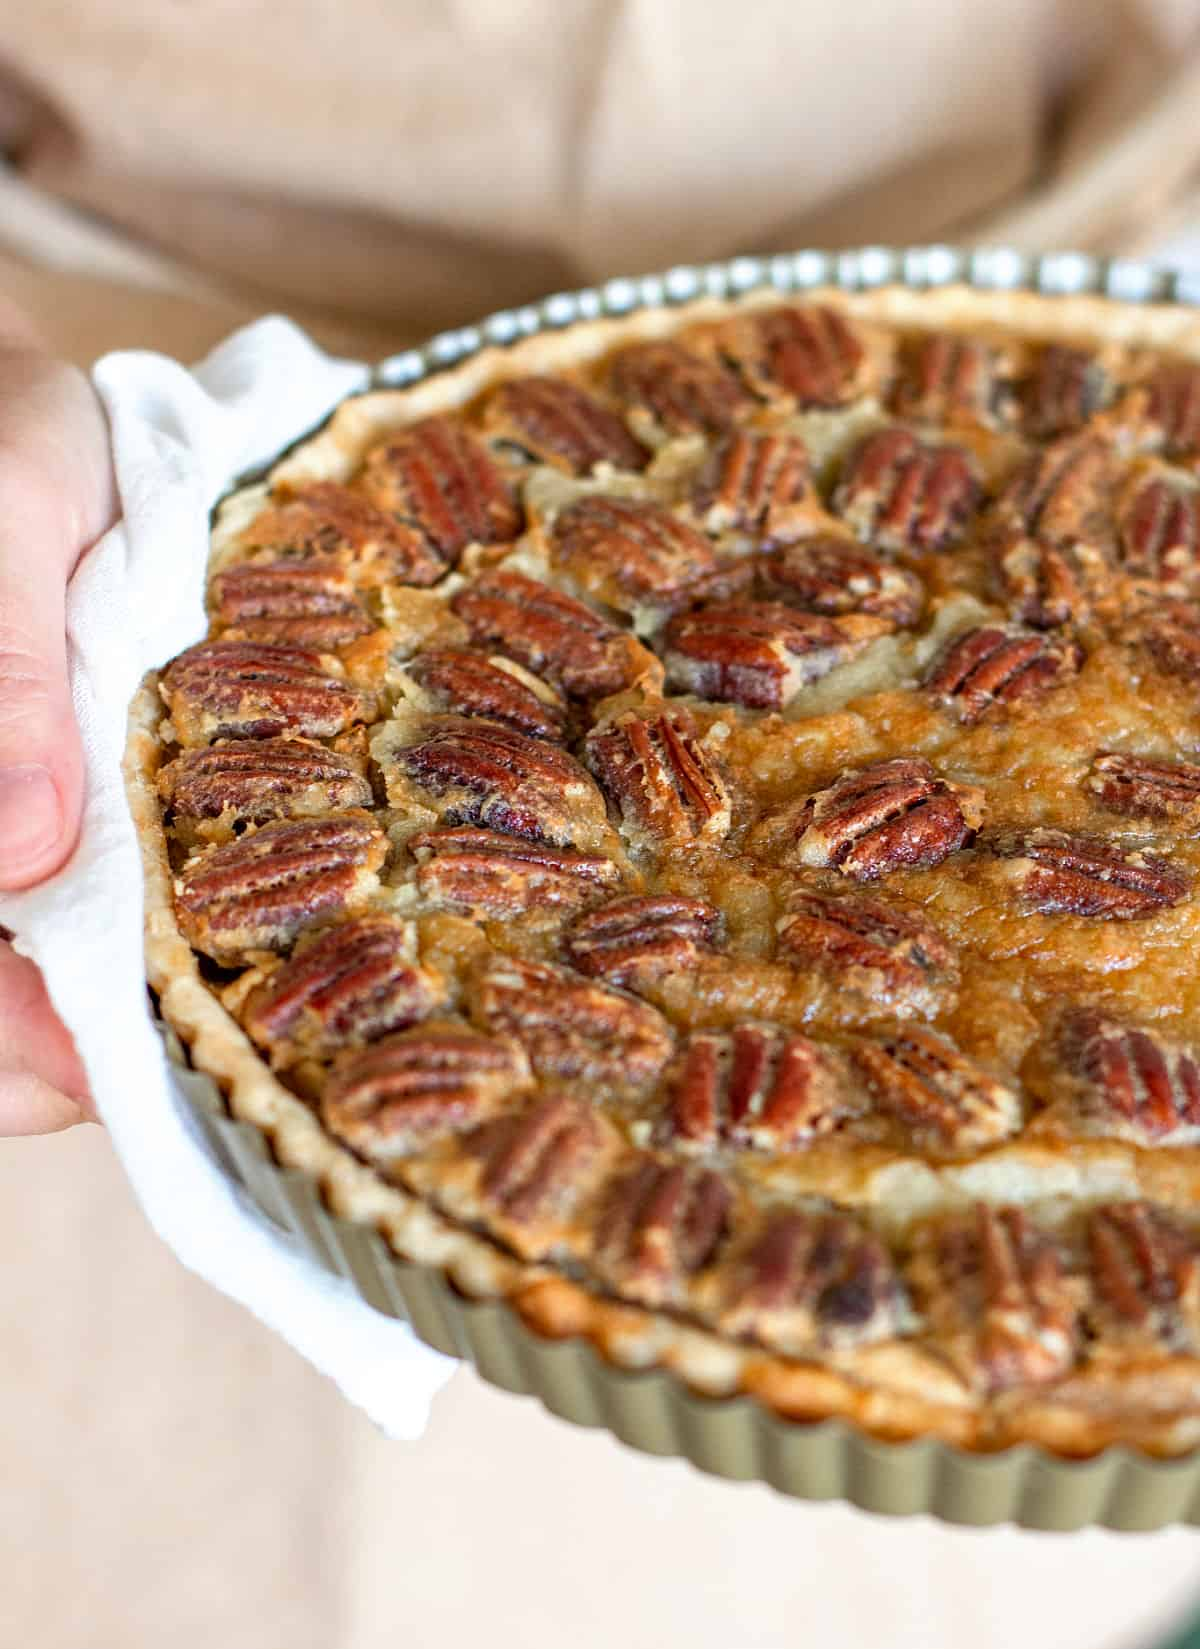 Partial view of hands holding pecan pie with white kitchen towel, beige apron